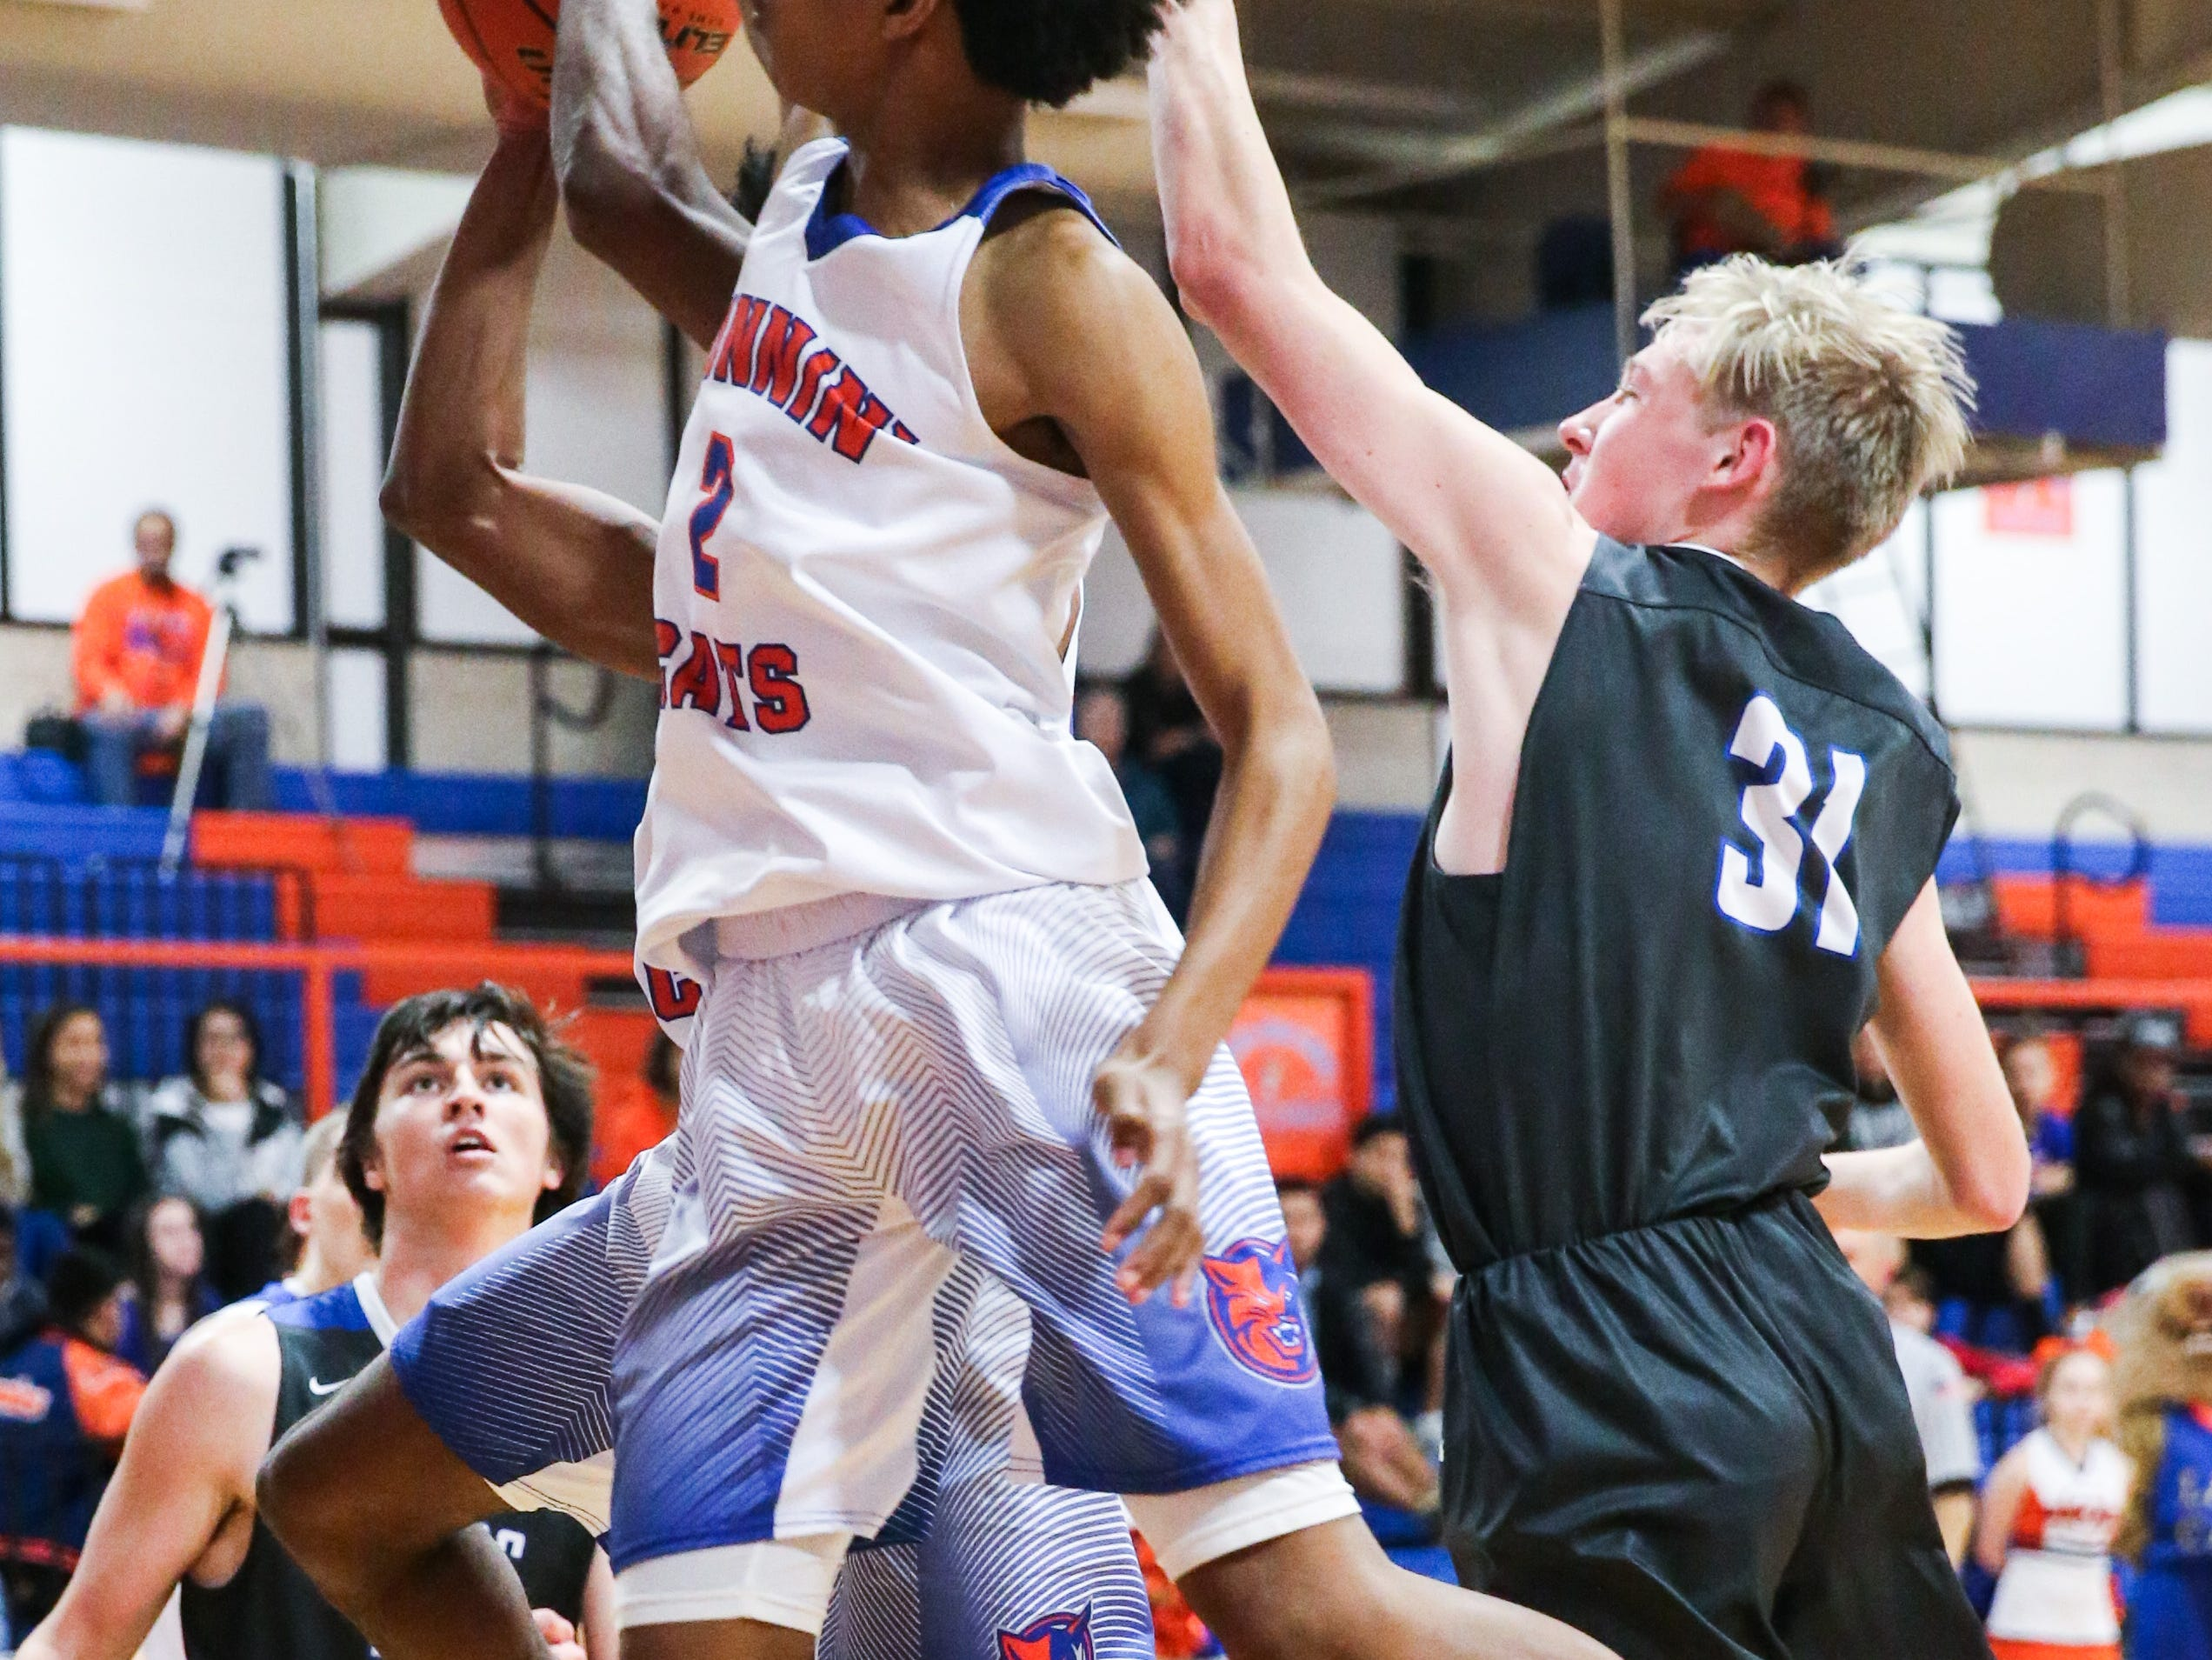 Central's Deveraux Minix jumps for the rebound against Weatherford Tuesday, Jan. 22, 2019, at Central High School.